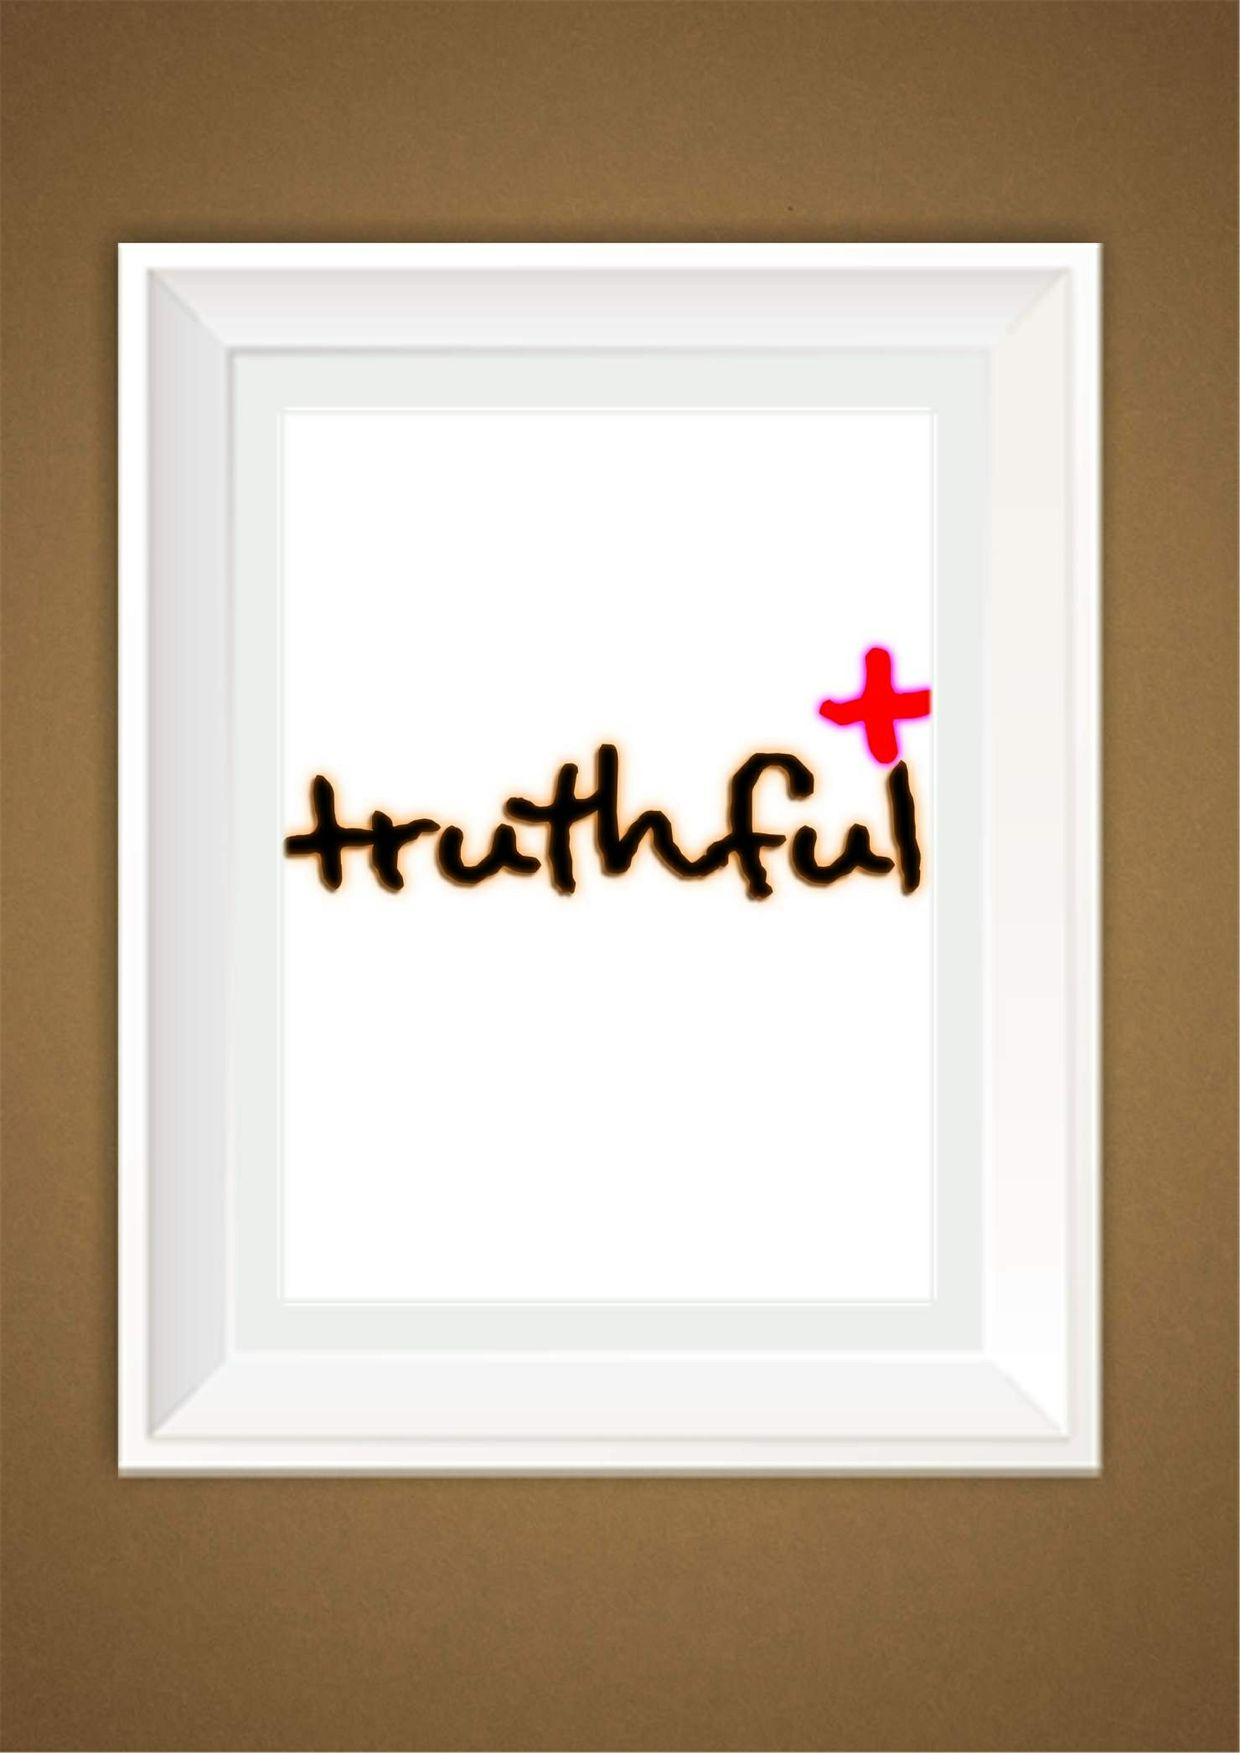 Truthful Wall Art Decor Print